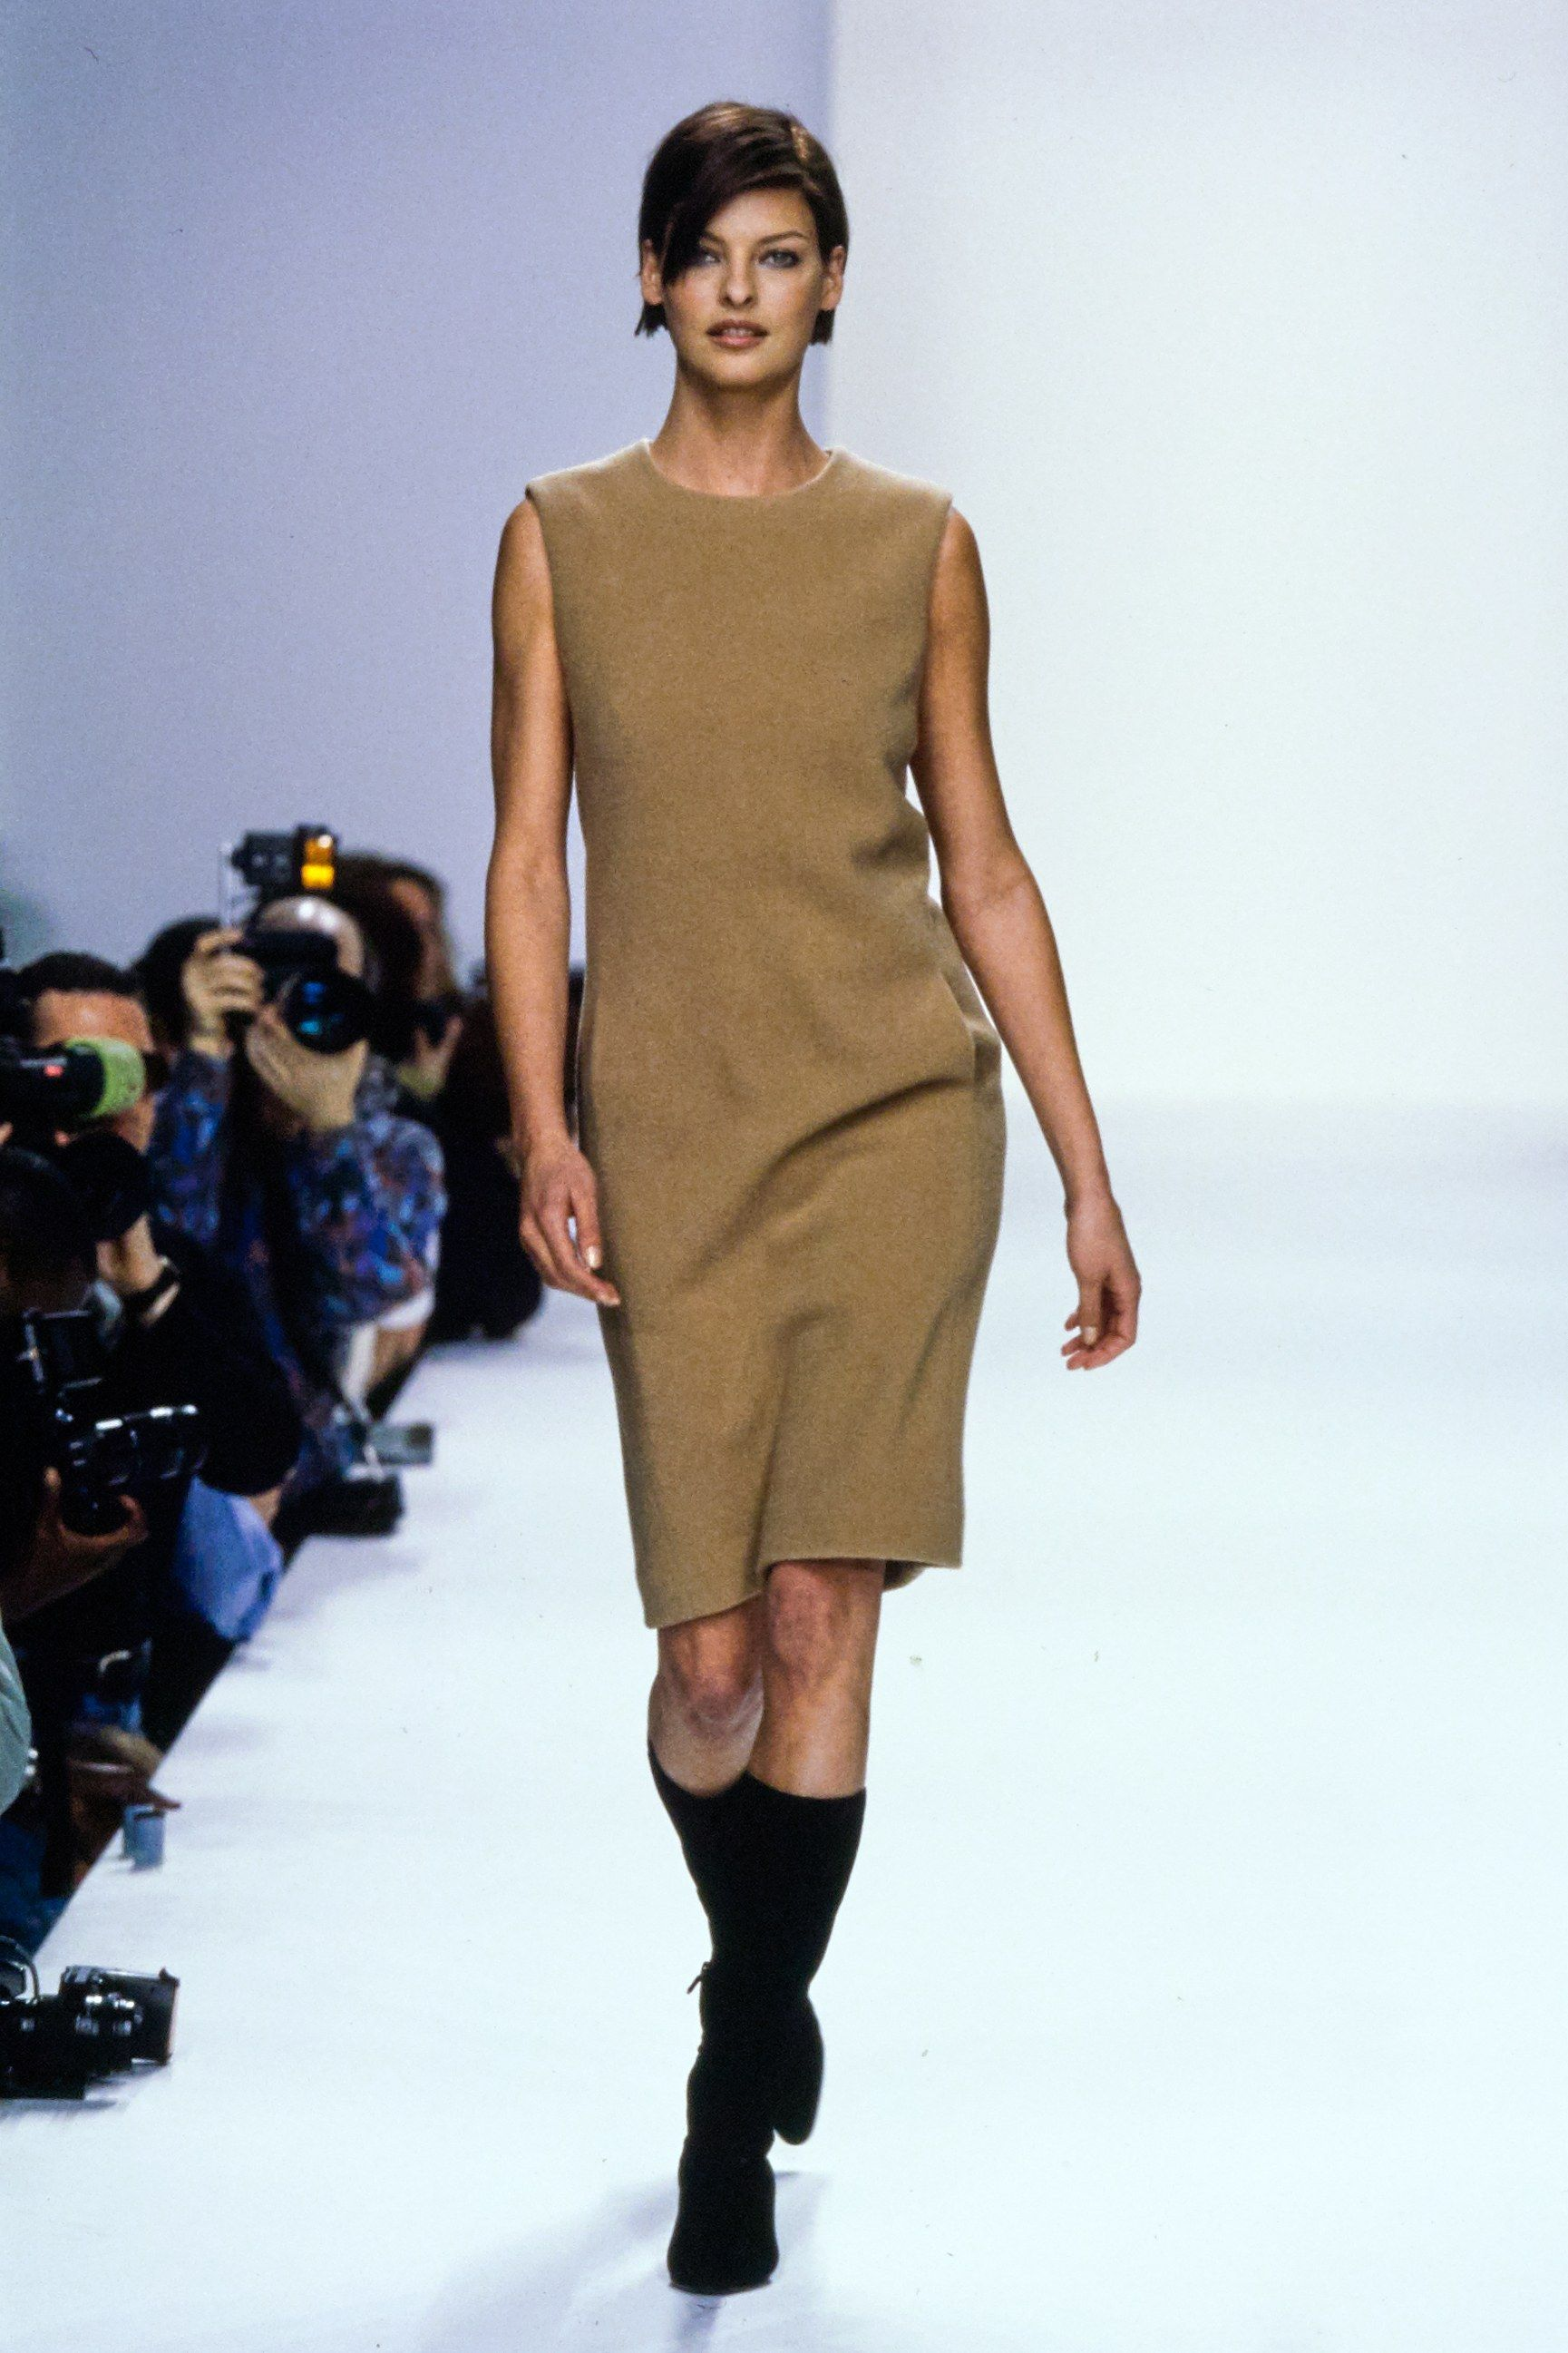 See the complete Calvin Klein Fall 1995 collection and 9 more Calvin Klein shows from the '90s.